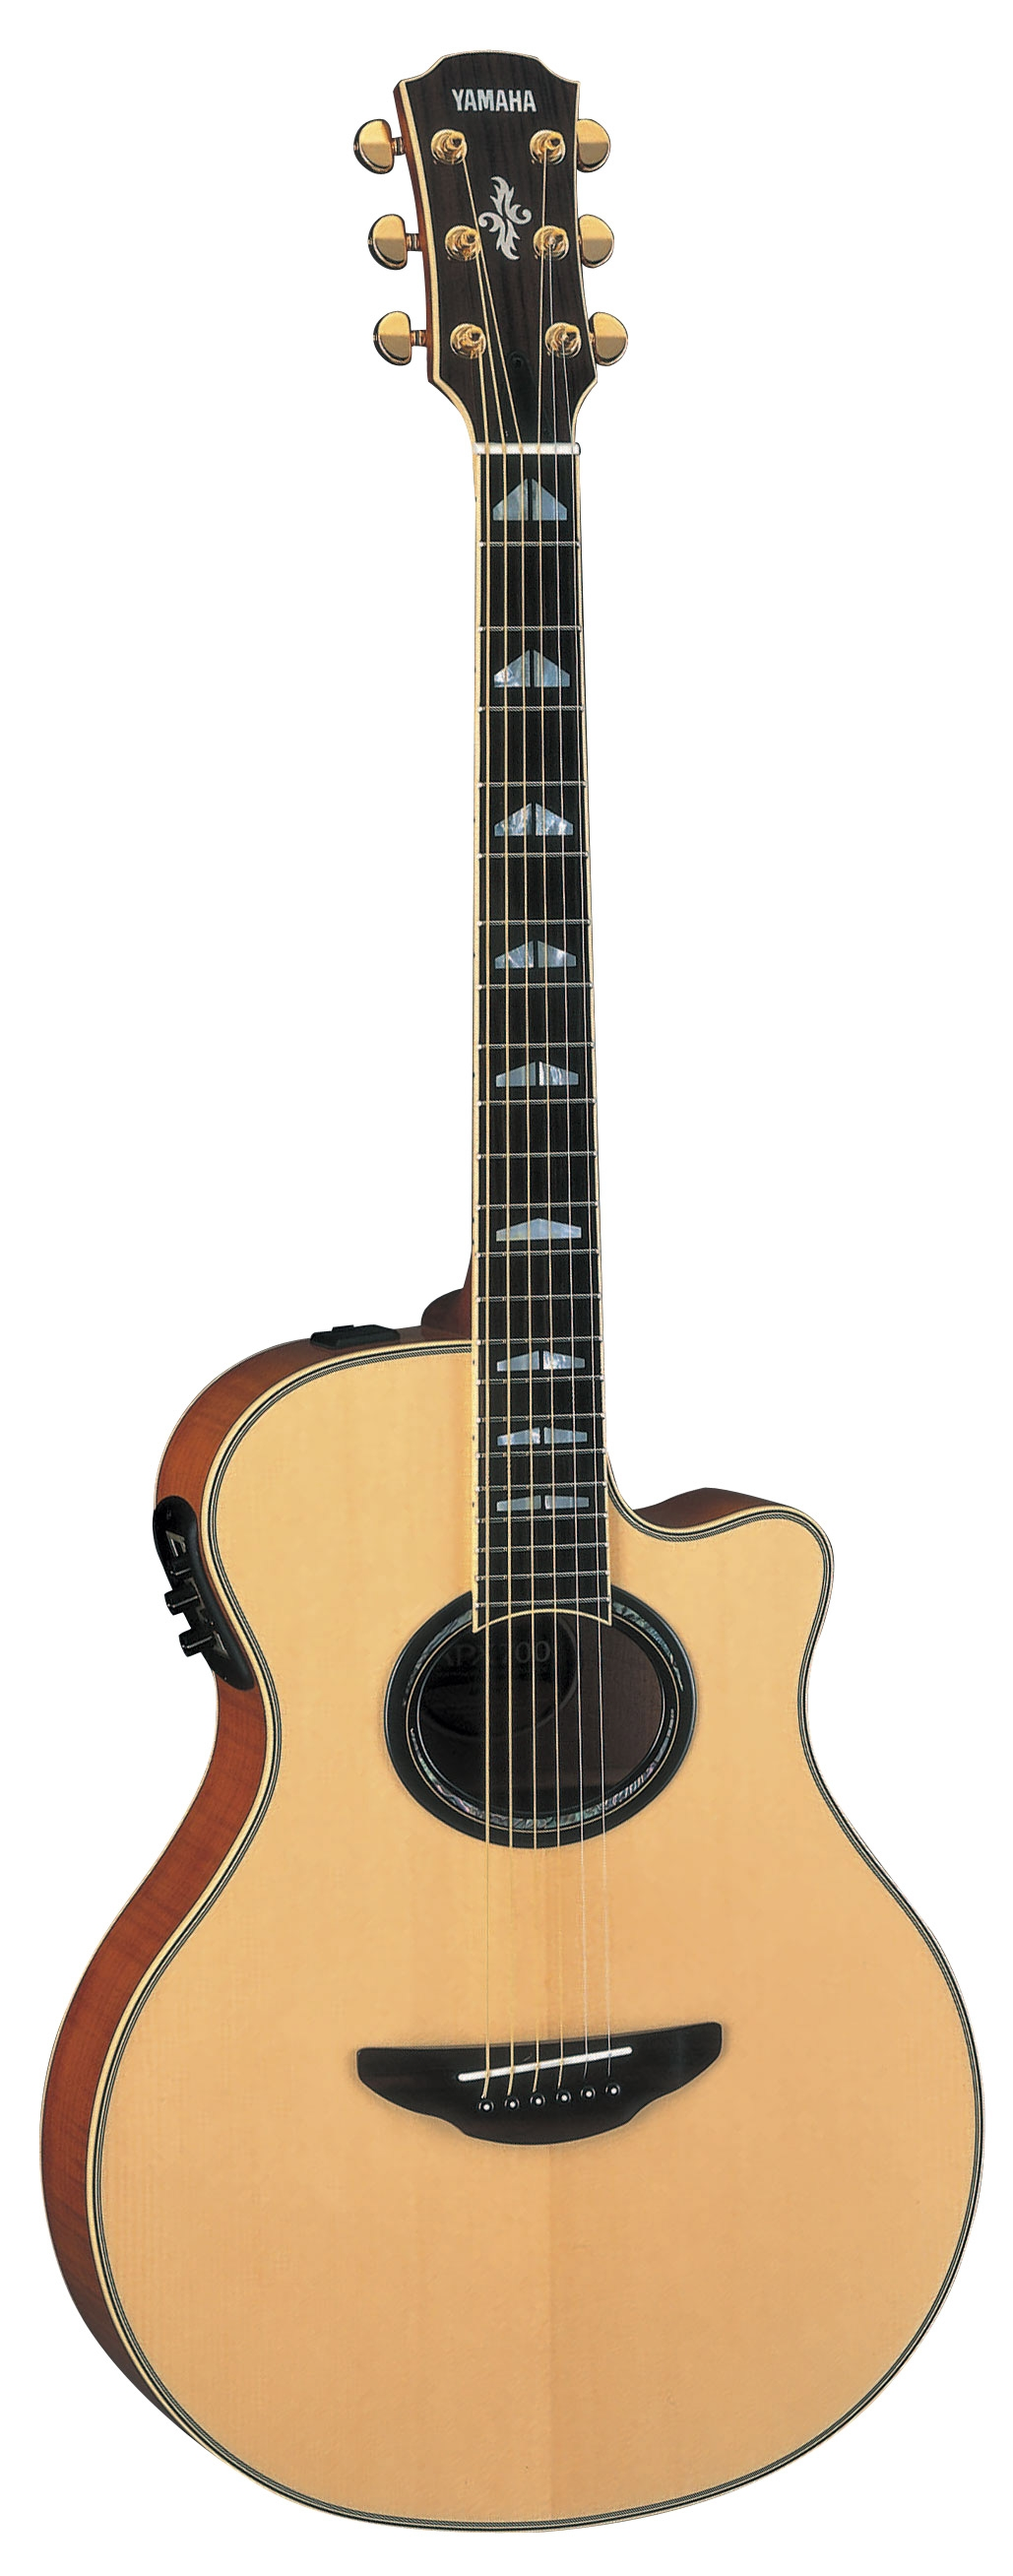 Guitare Yamaha APX 900 : infos / achat / vente